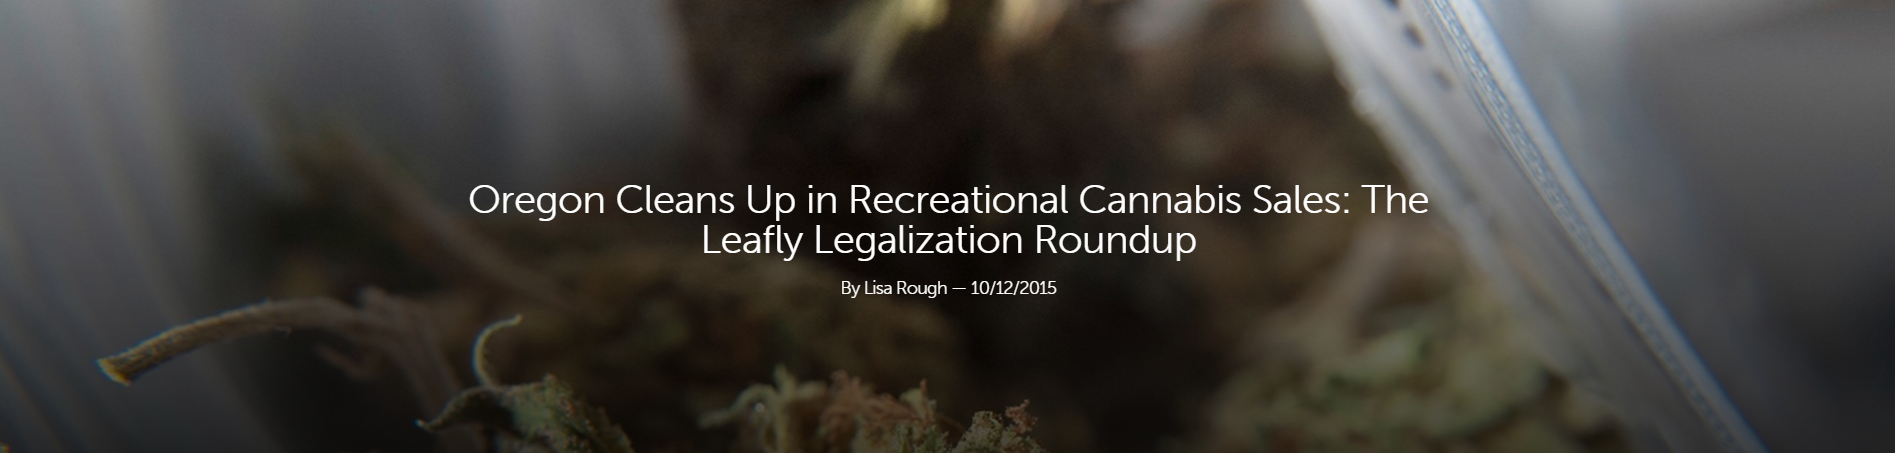 Oregon Cleans Up in Recreational Cannabis Sales: The Leafly Legalization Roundup